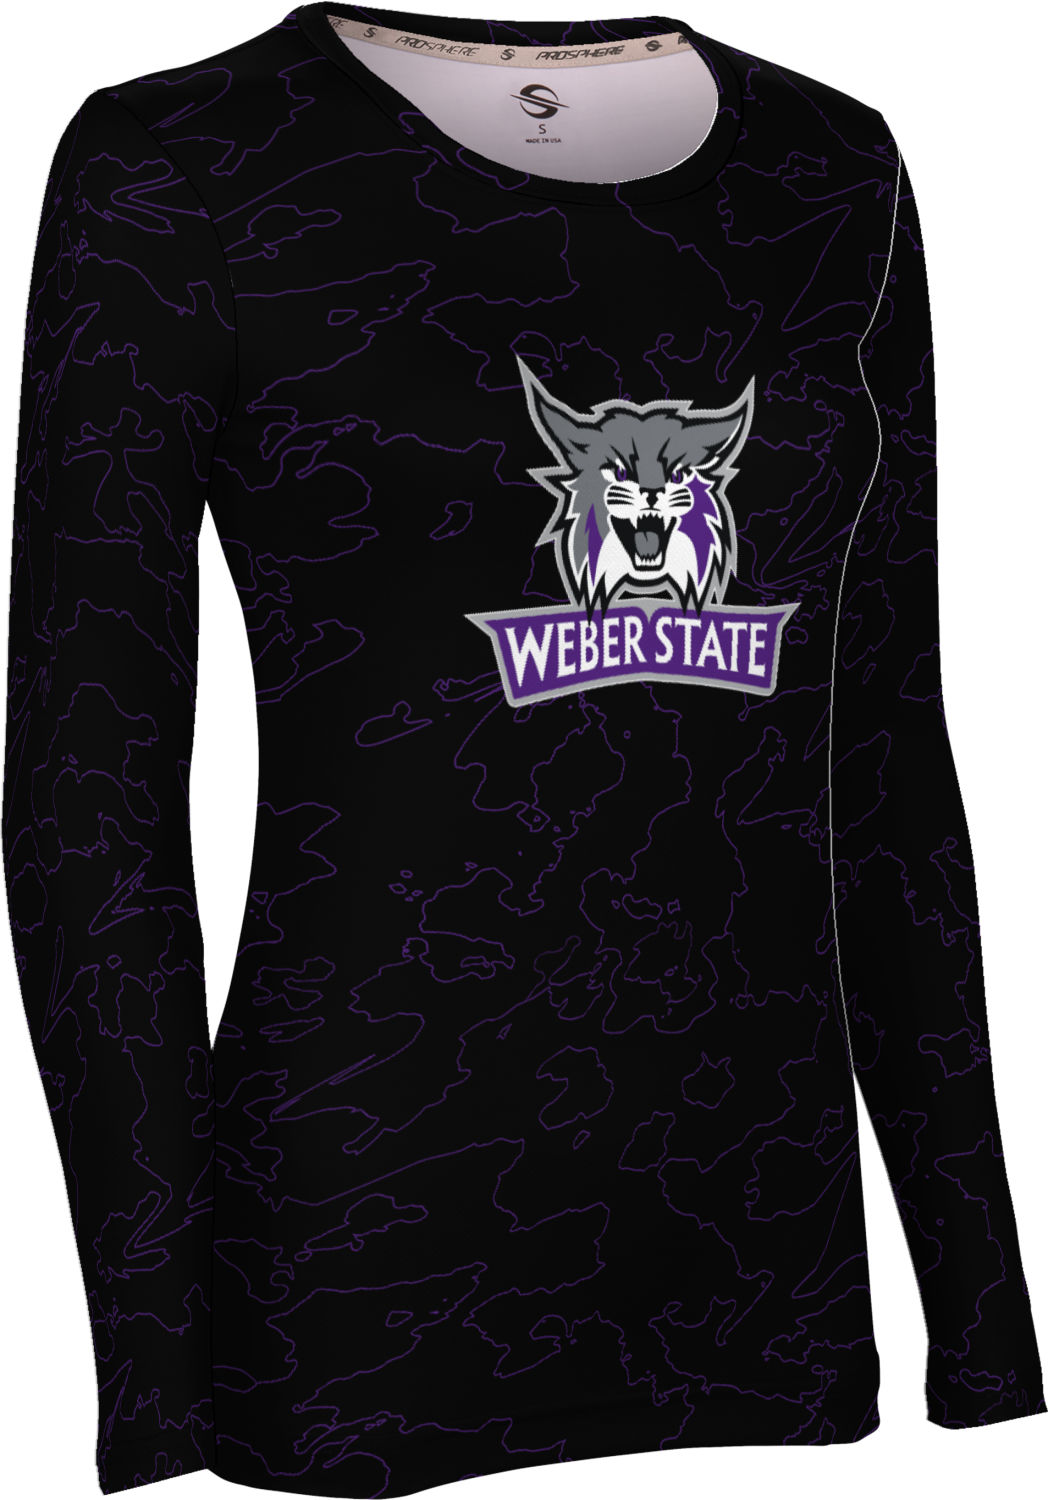 Weber State University: Women's Long Sleeve Tee - Topography